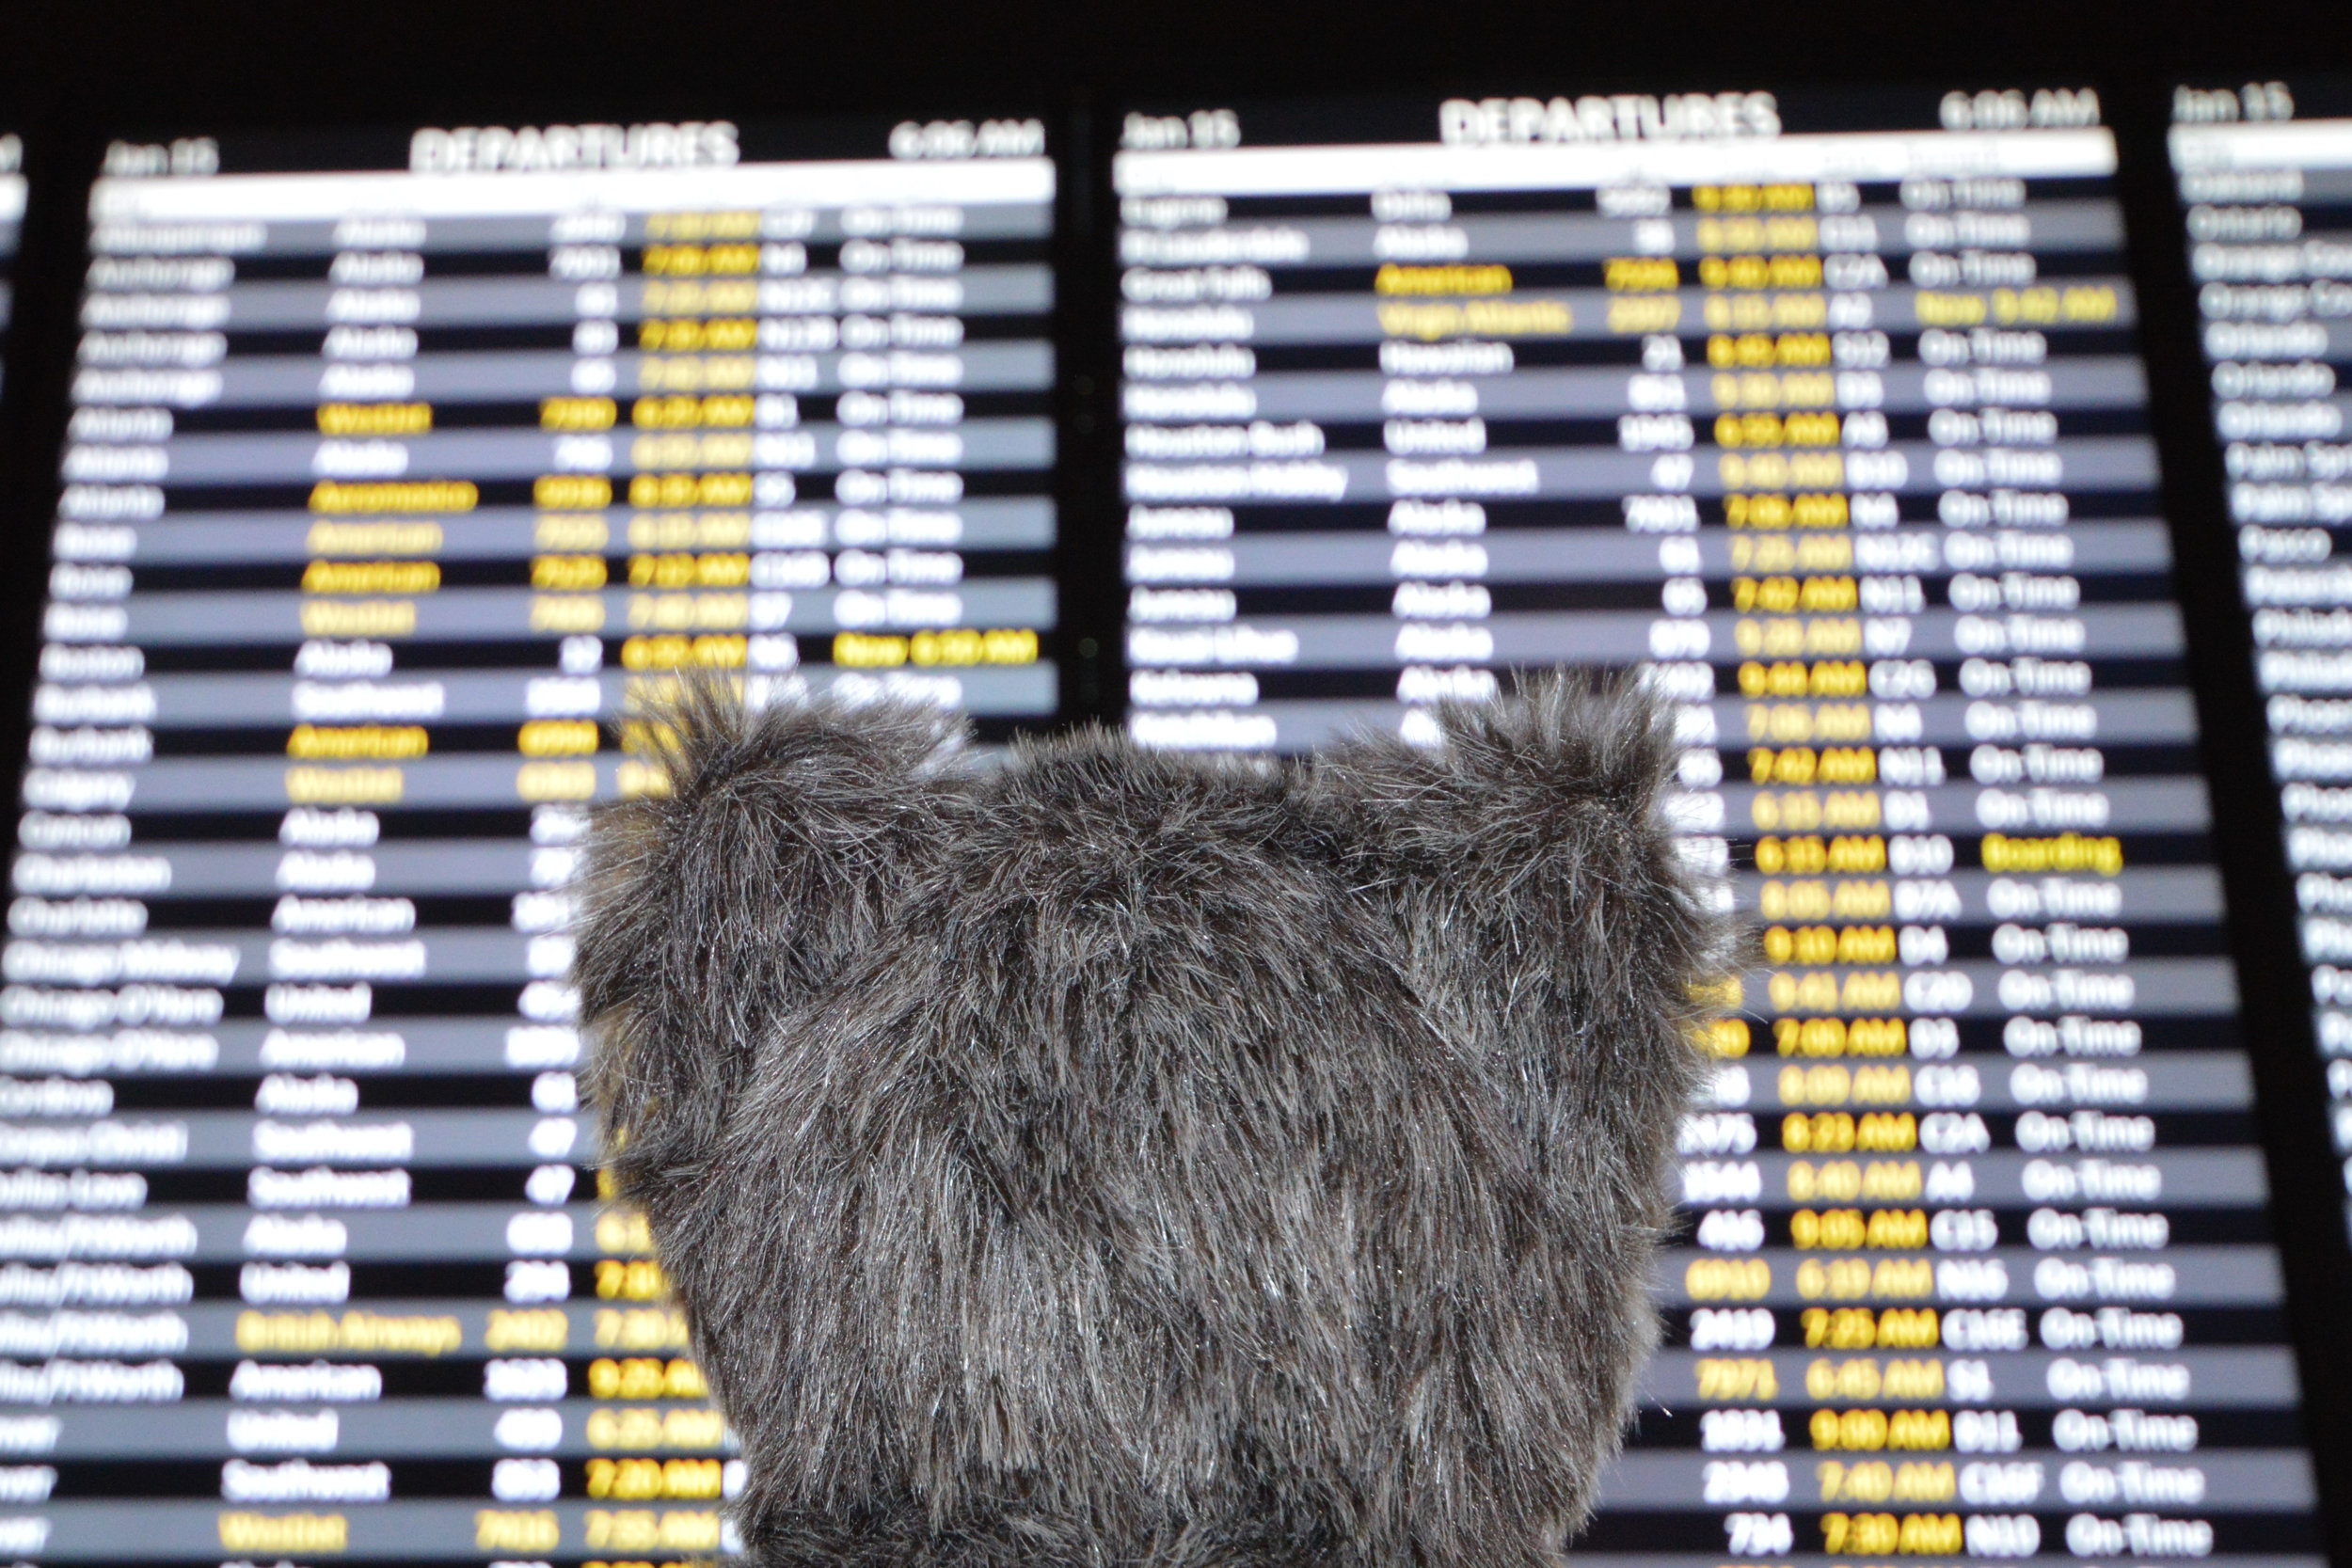 Where's Dash Going Departures.jpg